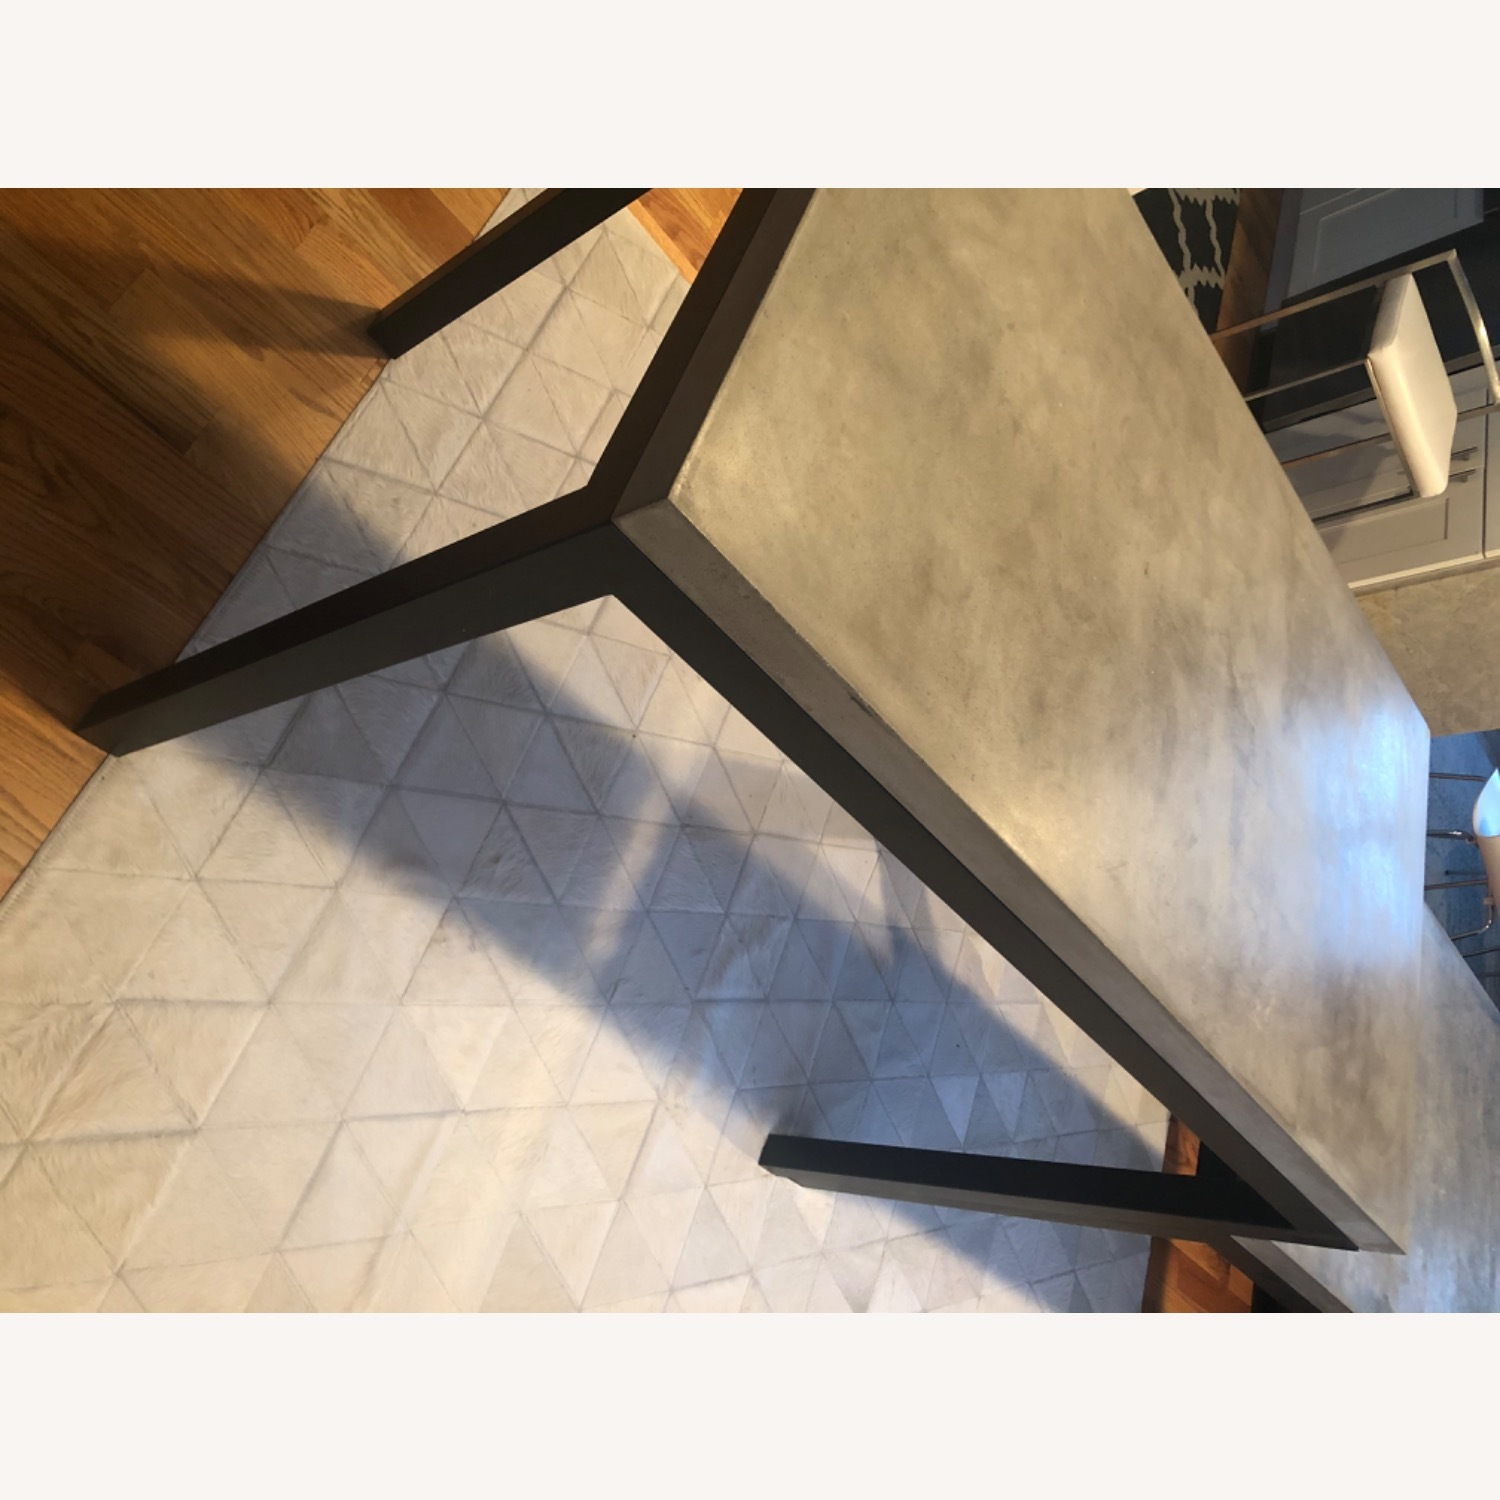 Crate & Barrel 2 Concrete Dining Tables - image-4